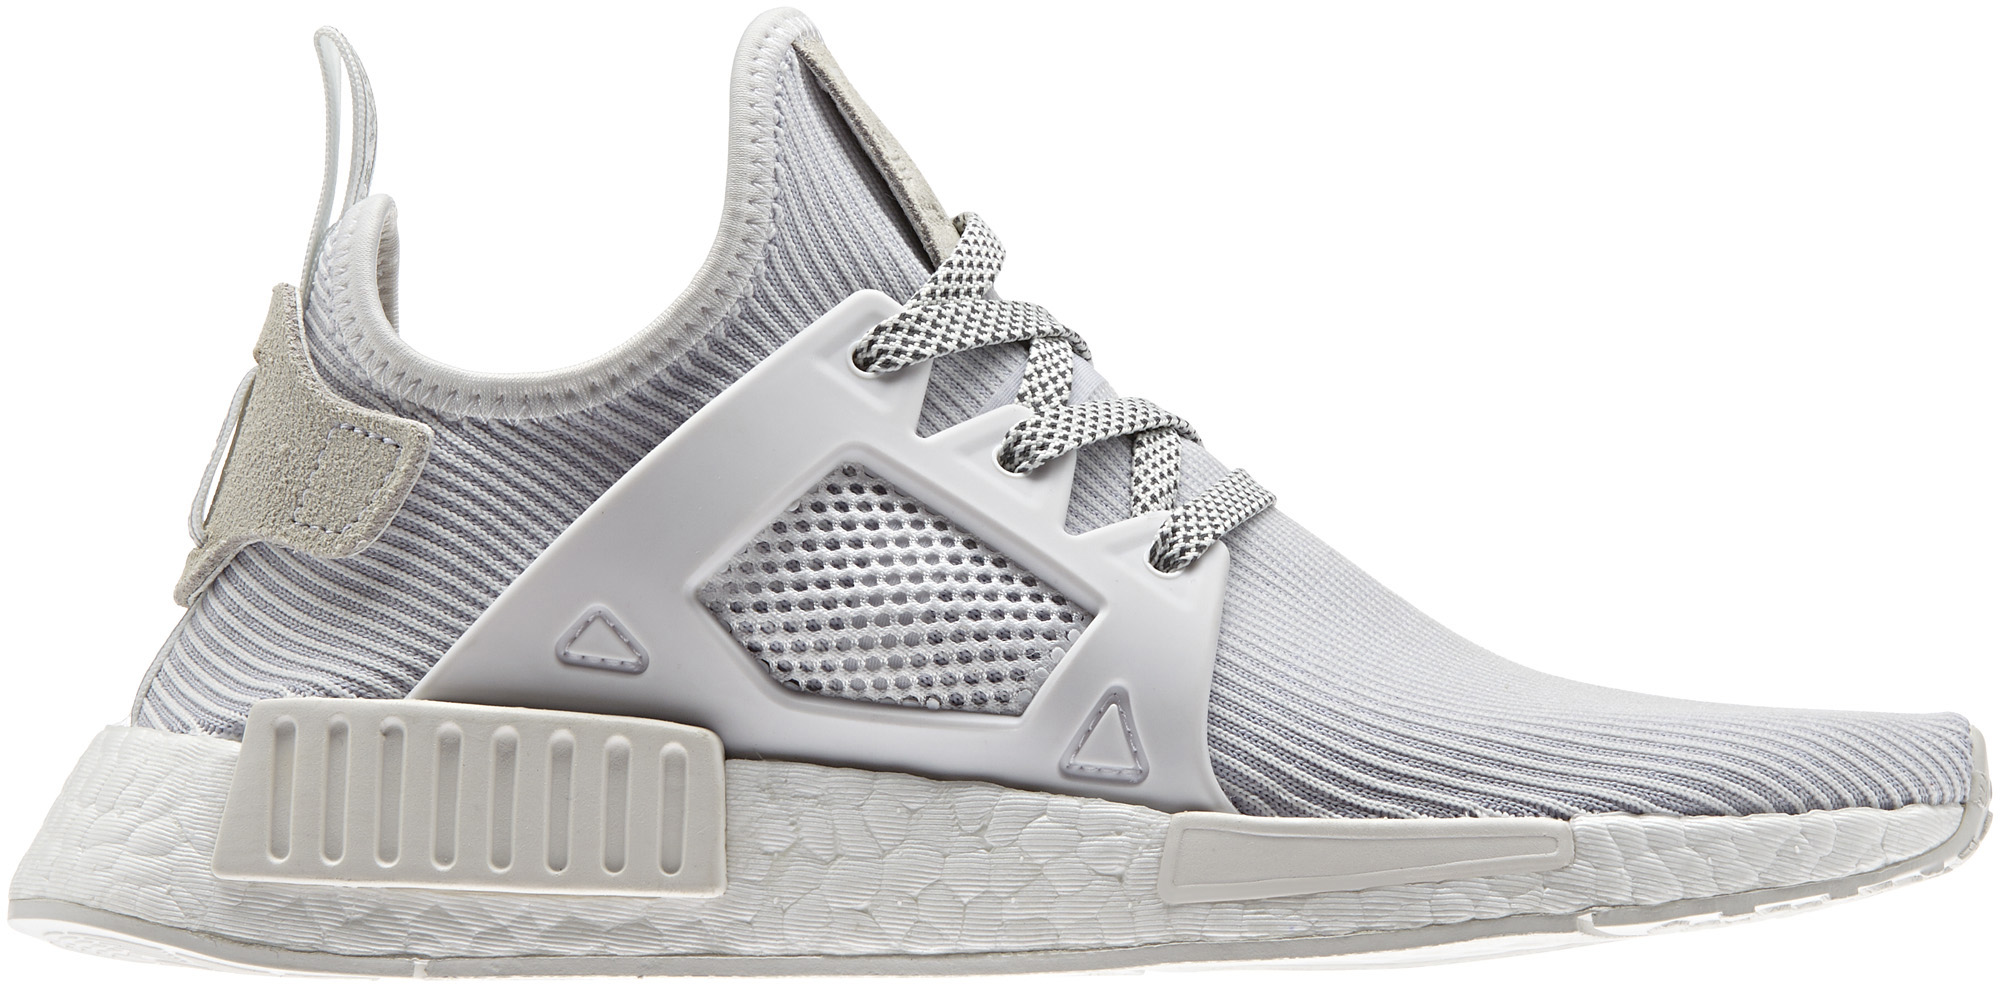 Adidas NMD XR1 Women's | Sole Collector